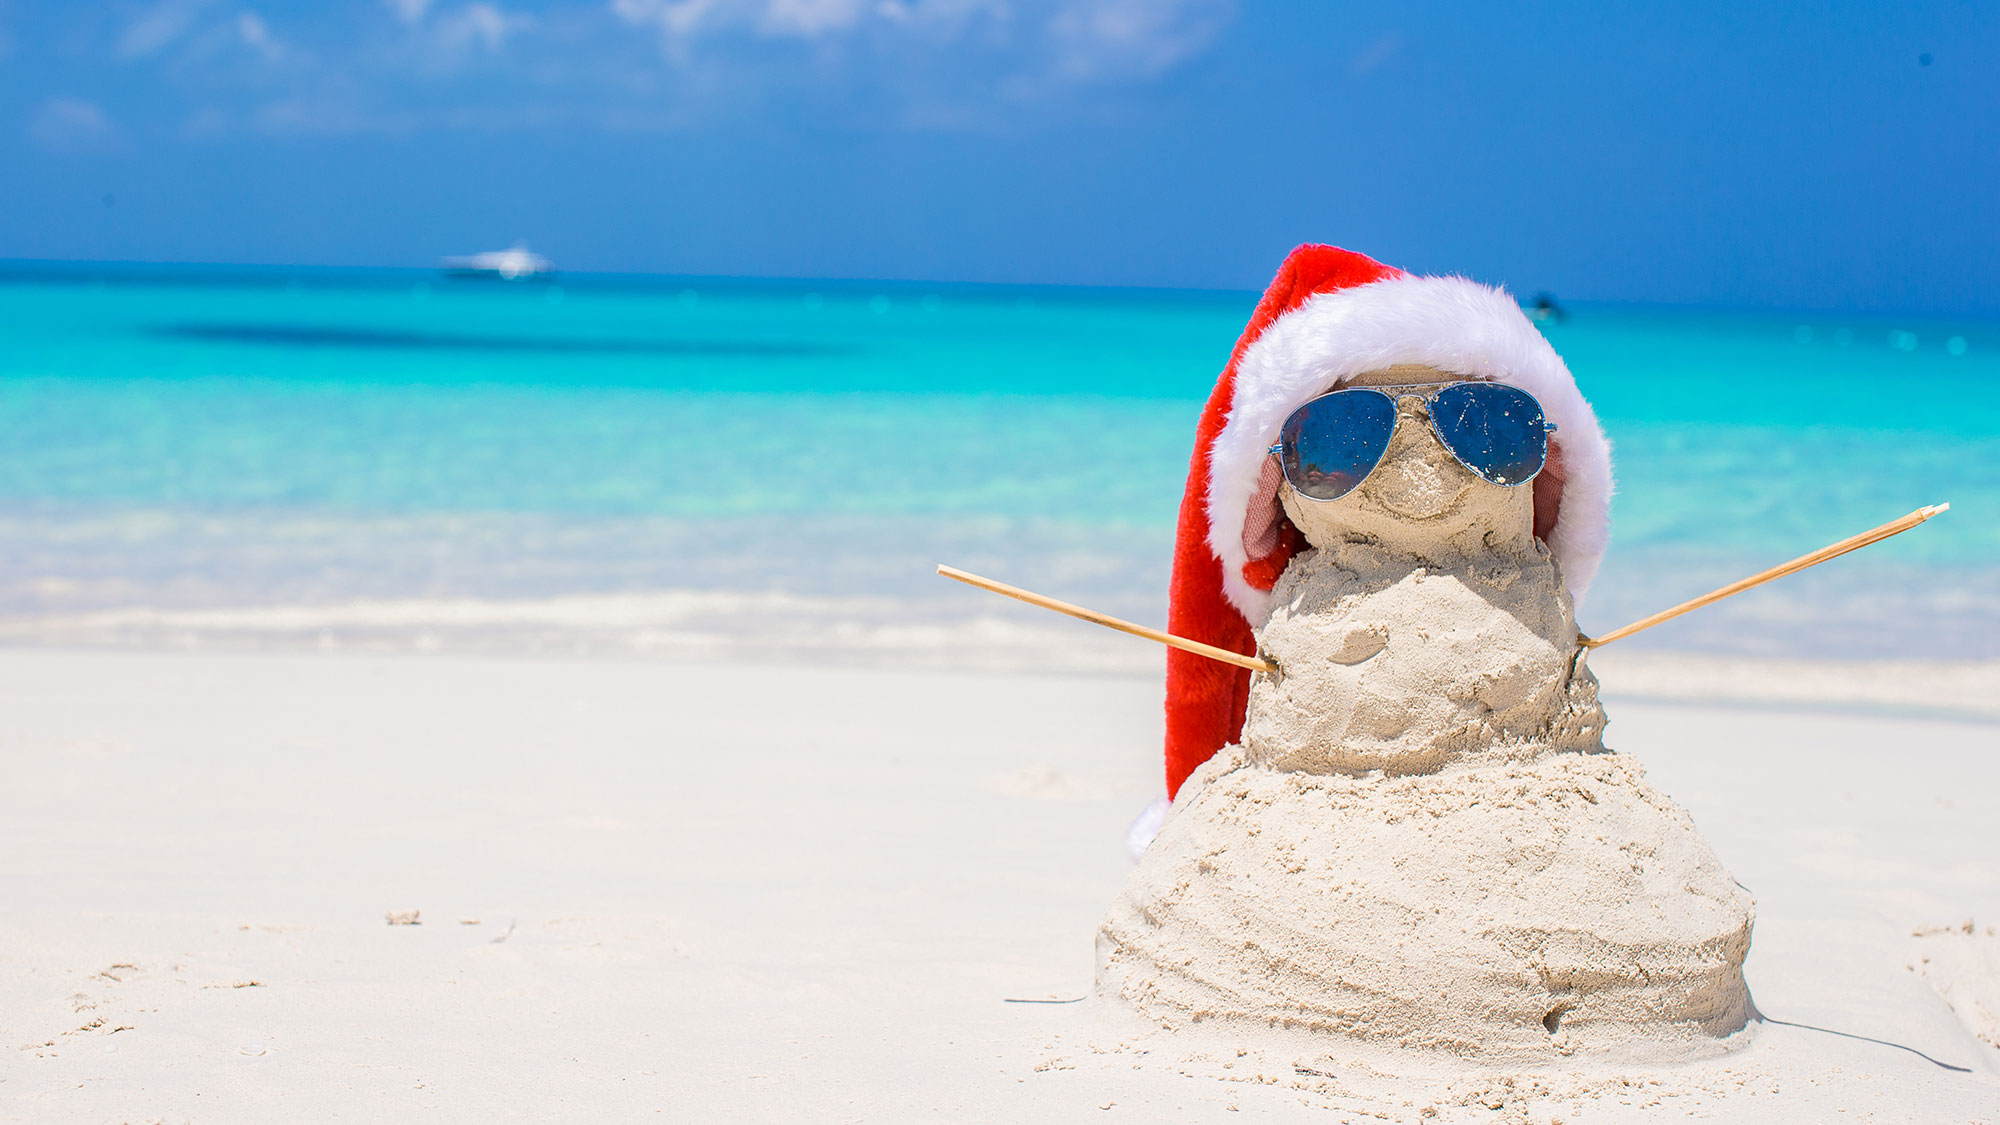 Virtuoso seeing a Caribbean comeback for the holidays and beyond